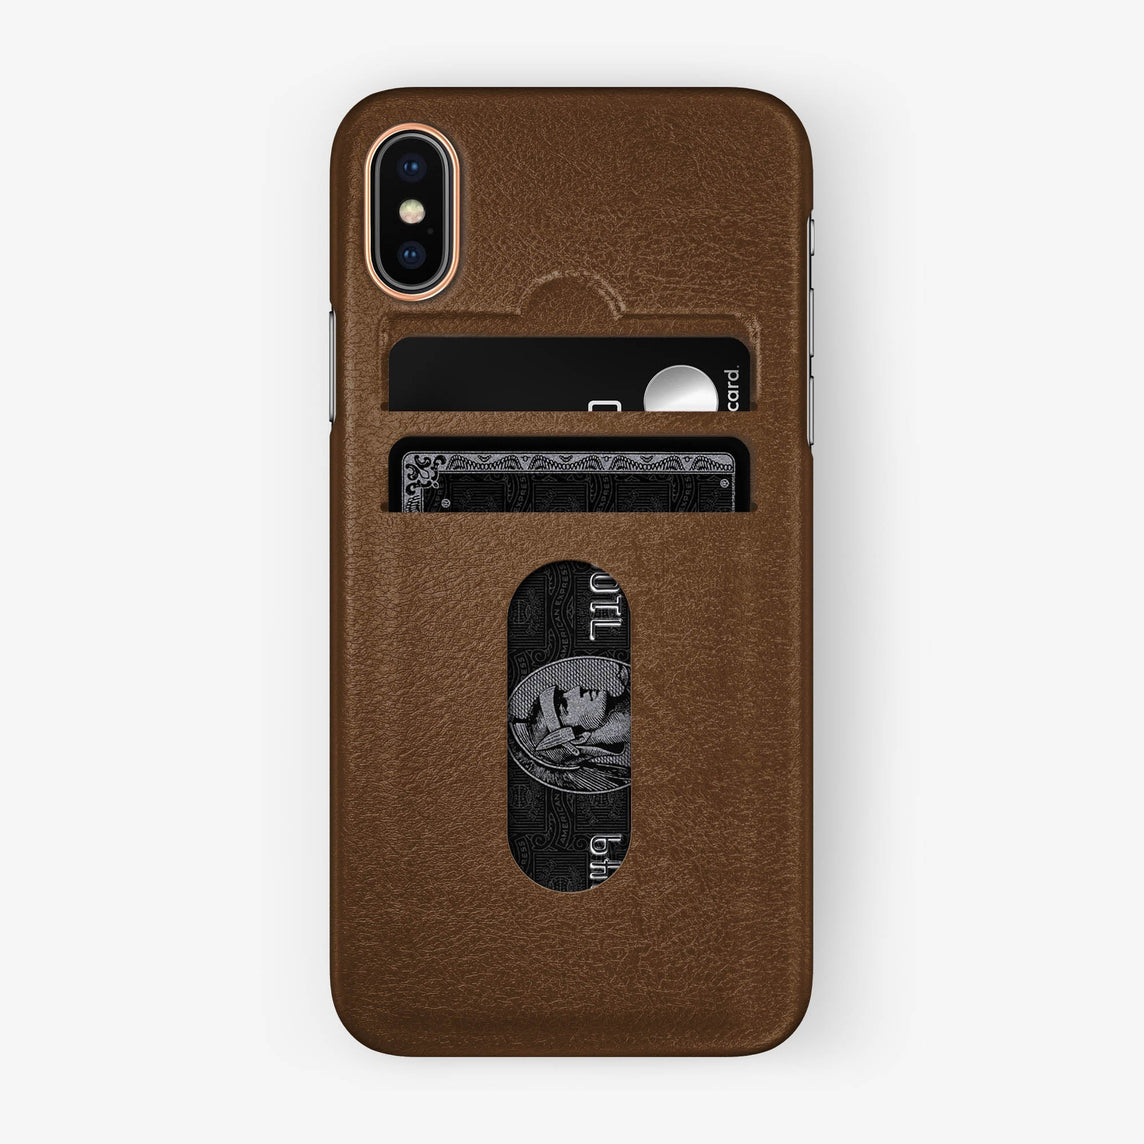 Brown Calfskin iPhone Card Holder Case for iPhone X finishing rose gold - Hadoro Luxury Cases